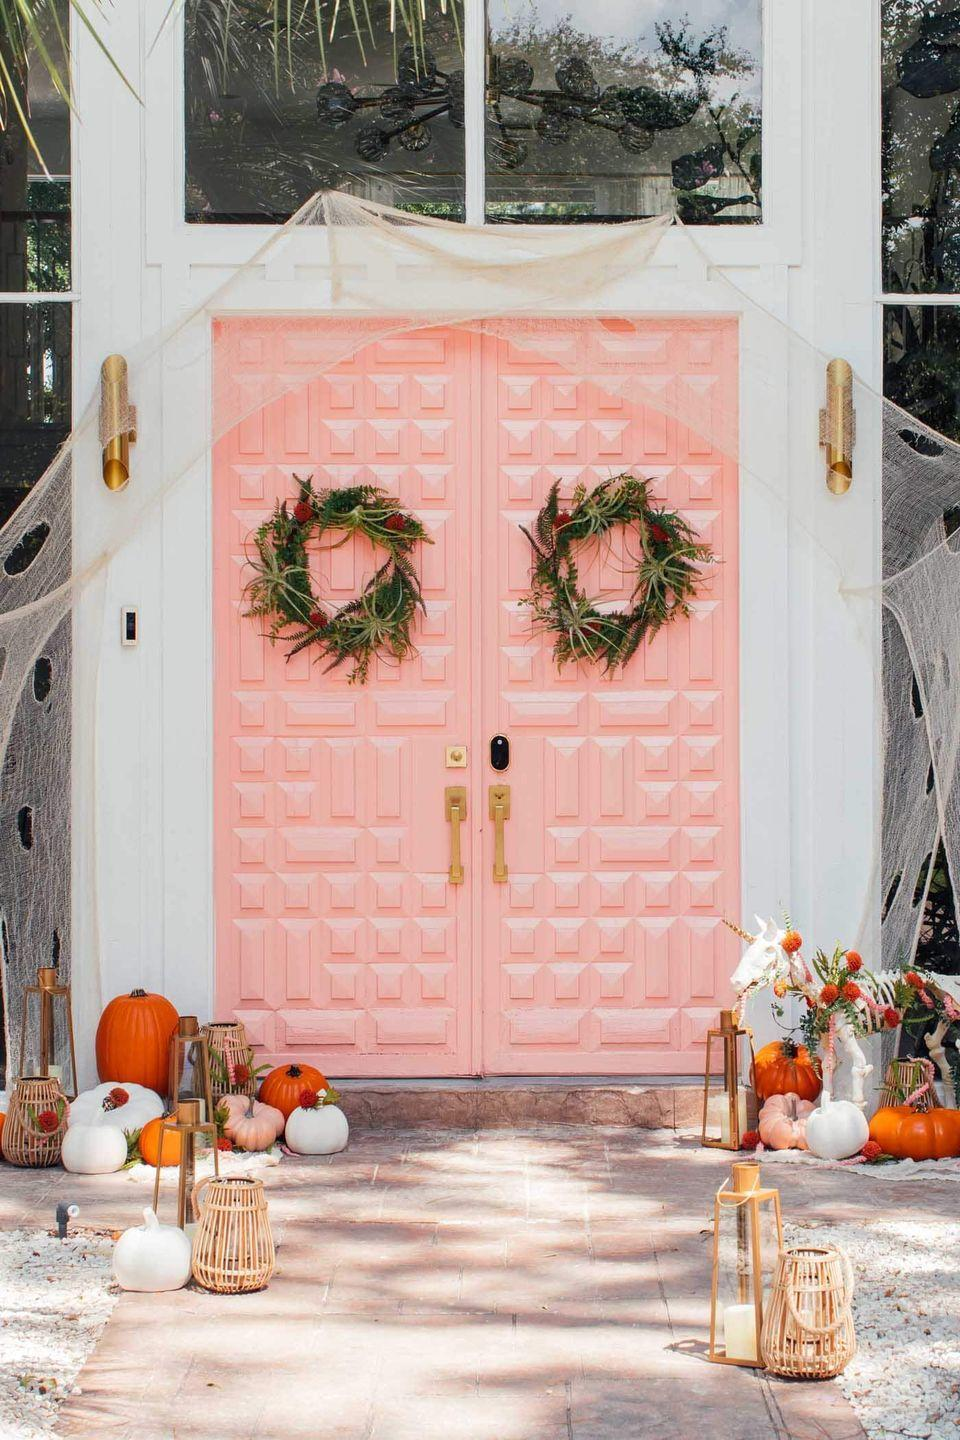 "<p>We adore everything about this blush-colored entryway display. But our favorite part is probably the unicorn skeleton in the corner. </p><p><em><a href=""https://sugarandcloth.com/halloween-door-decor-3-not-so-spooky-front-door-decor-ideas/"" rel=""nofollow noopener"" target=""_blank"" data-ylk=""slk:Get the tutorial at Sugar & Cloth »"" class=""link rapid-noclick-resp"">Get the tutorial at Sugar & Cloth »</a></em></p>"